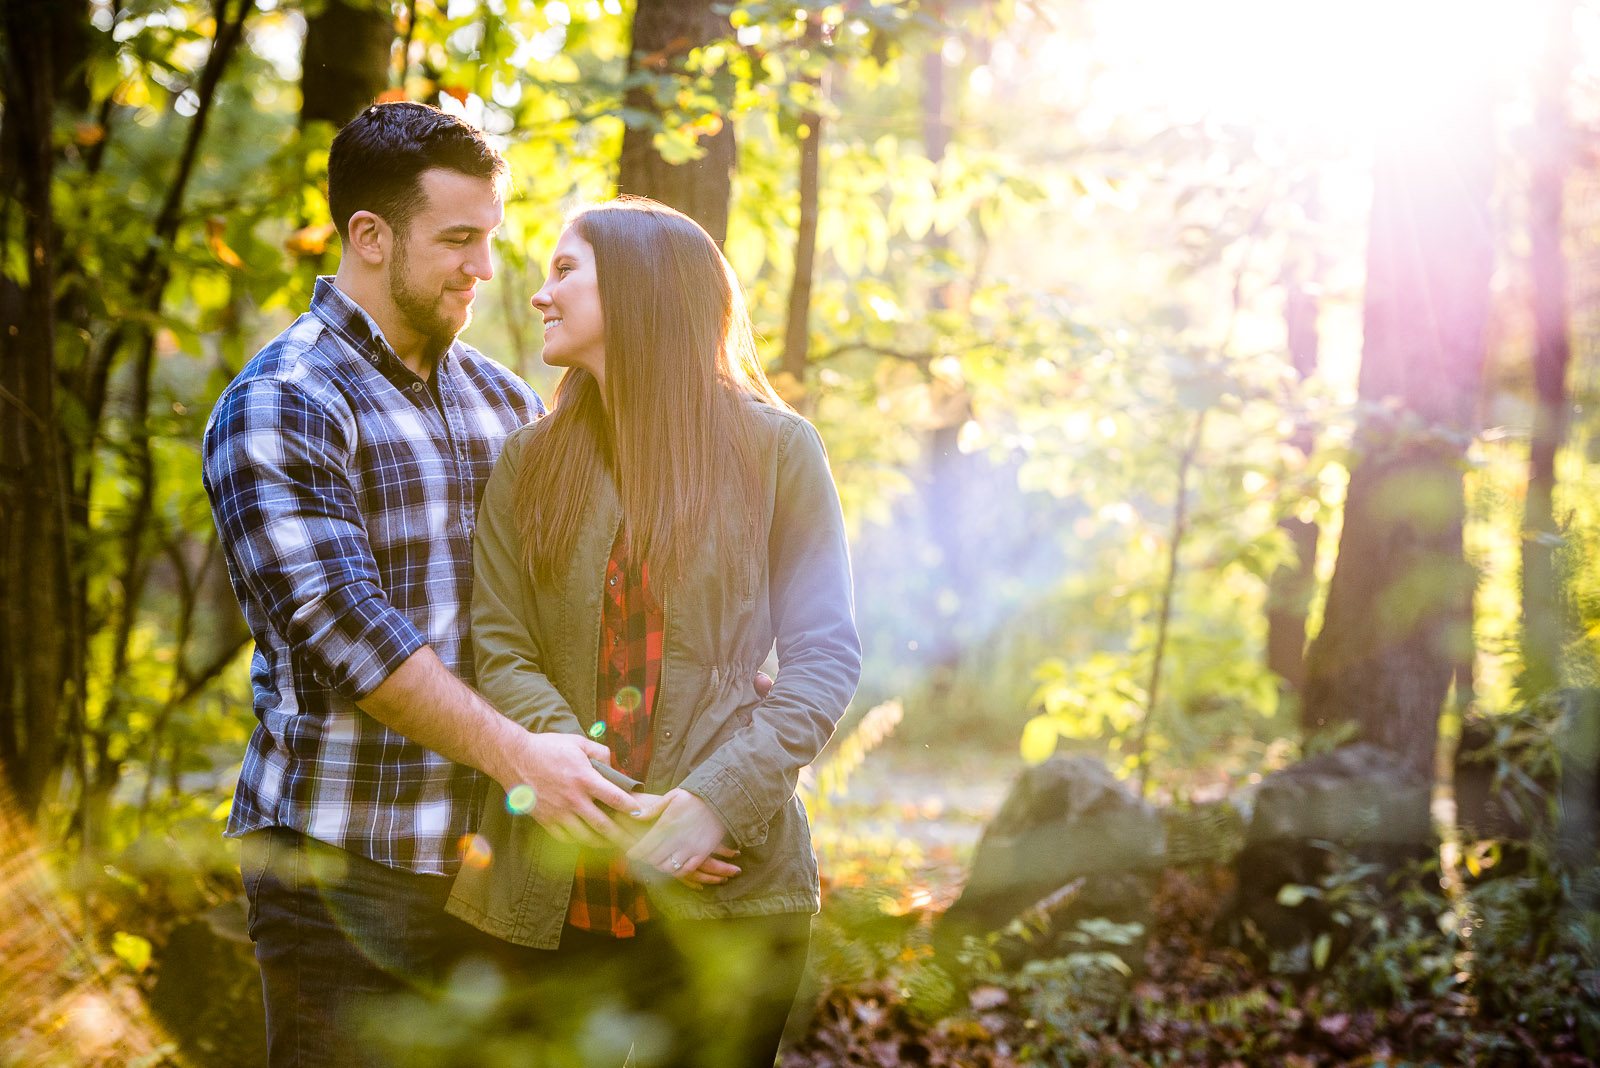 Eric_and_Christy_Photography_Blog_Stephanie_Nick_Engagement-26